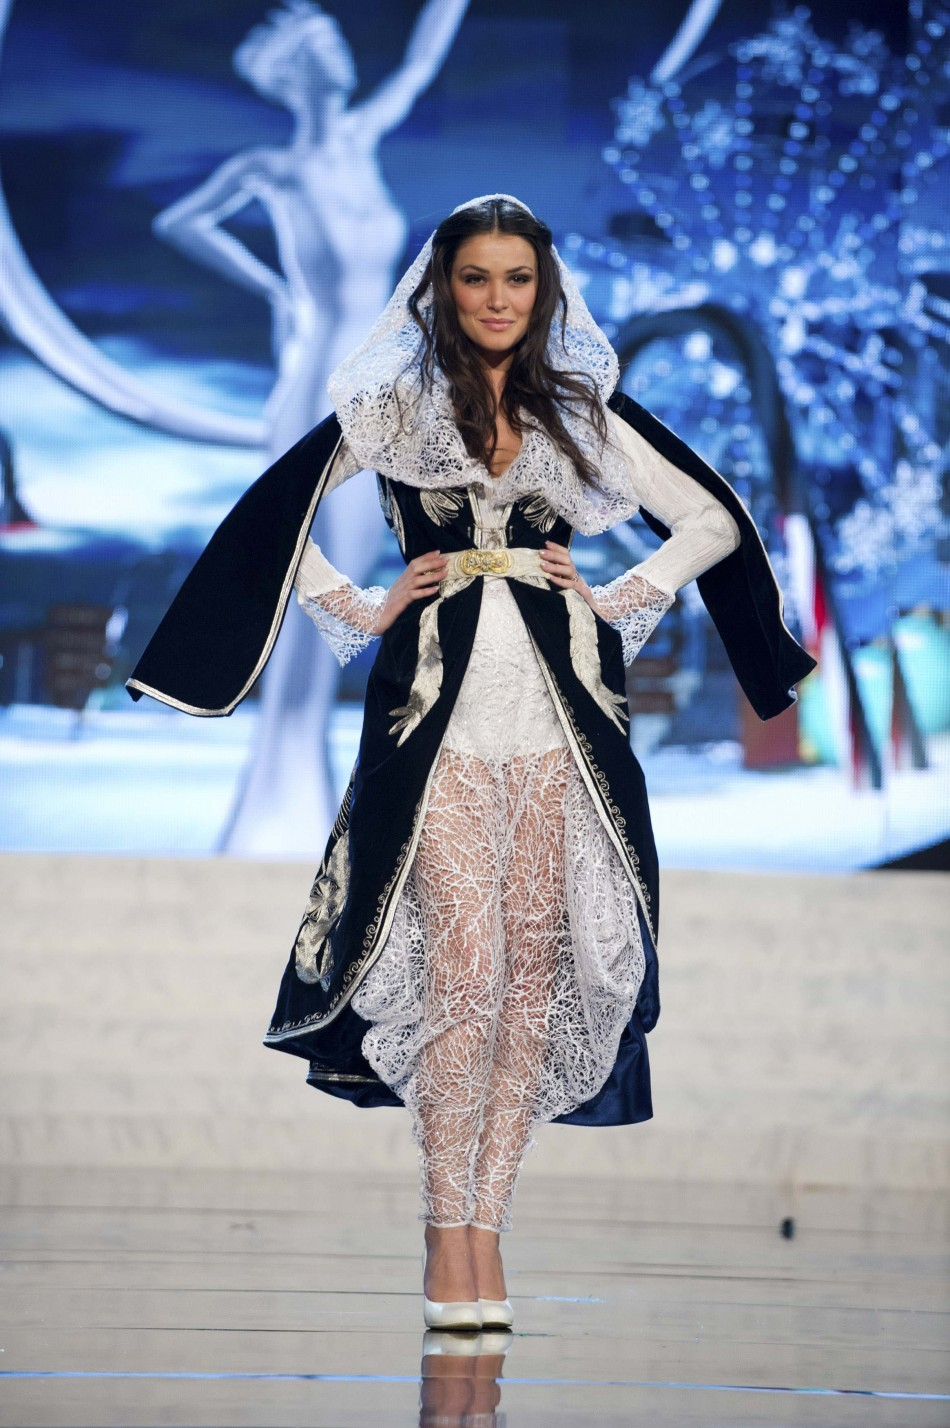 Miss Universe 2012: Who Should Have Won?